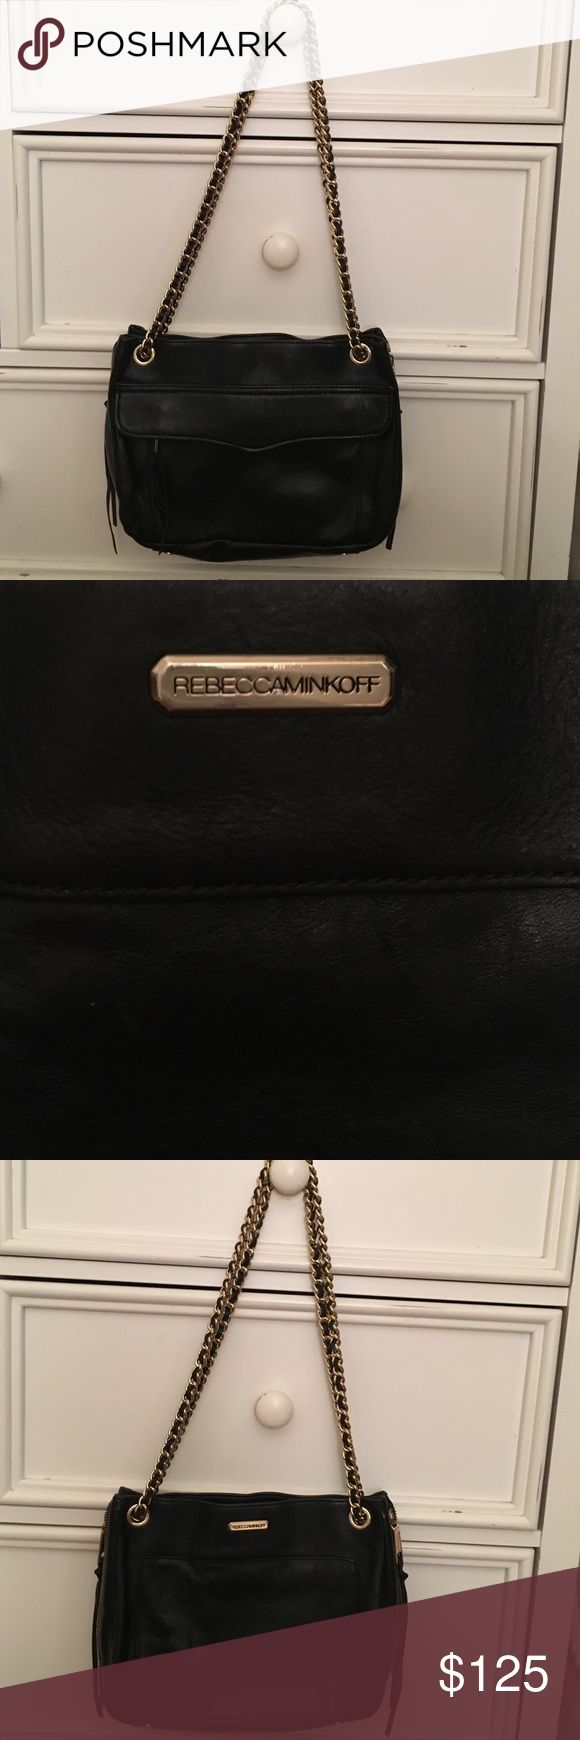 Authentic Rebecca Minkoff black purse. Black Rebecca Minkoff leather swing convertible crossbody bag with gold zippers and chain. Can be worn over the shoulder or cross body. Has many zippers and space inside for wallets etc. Rebecca Minkoff Bags Shoulder Bags